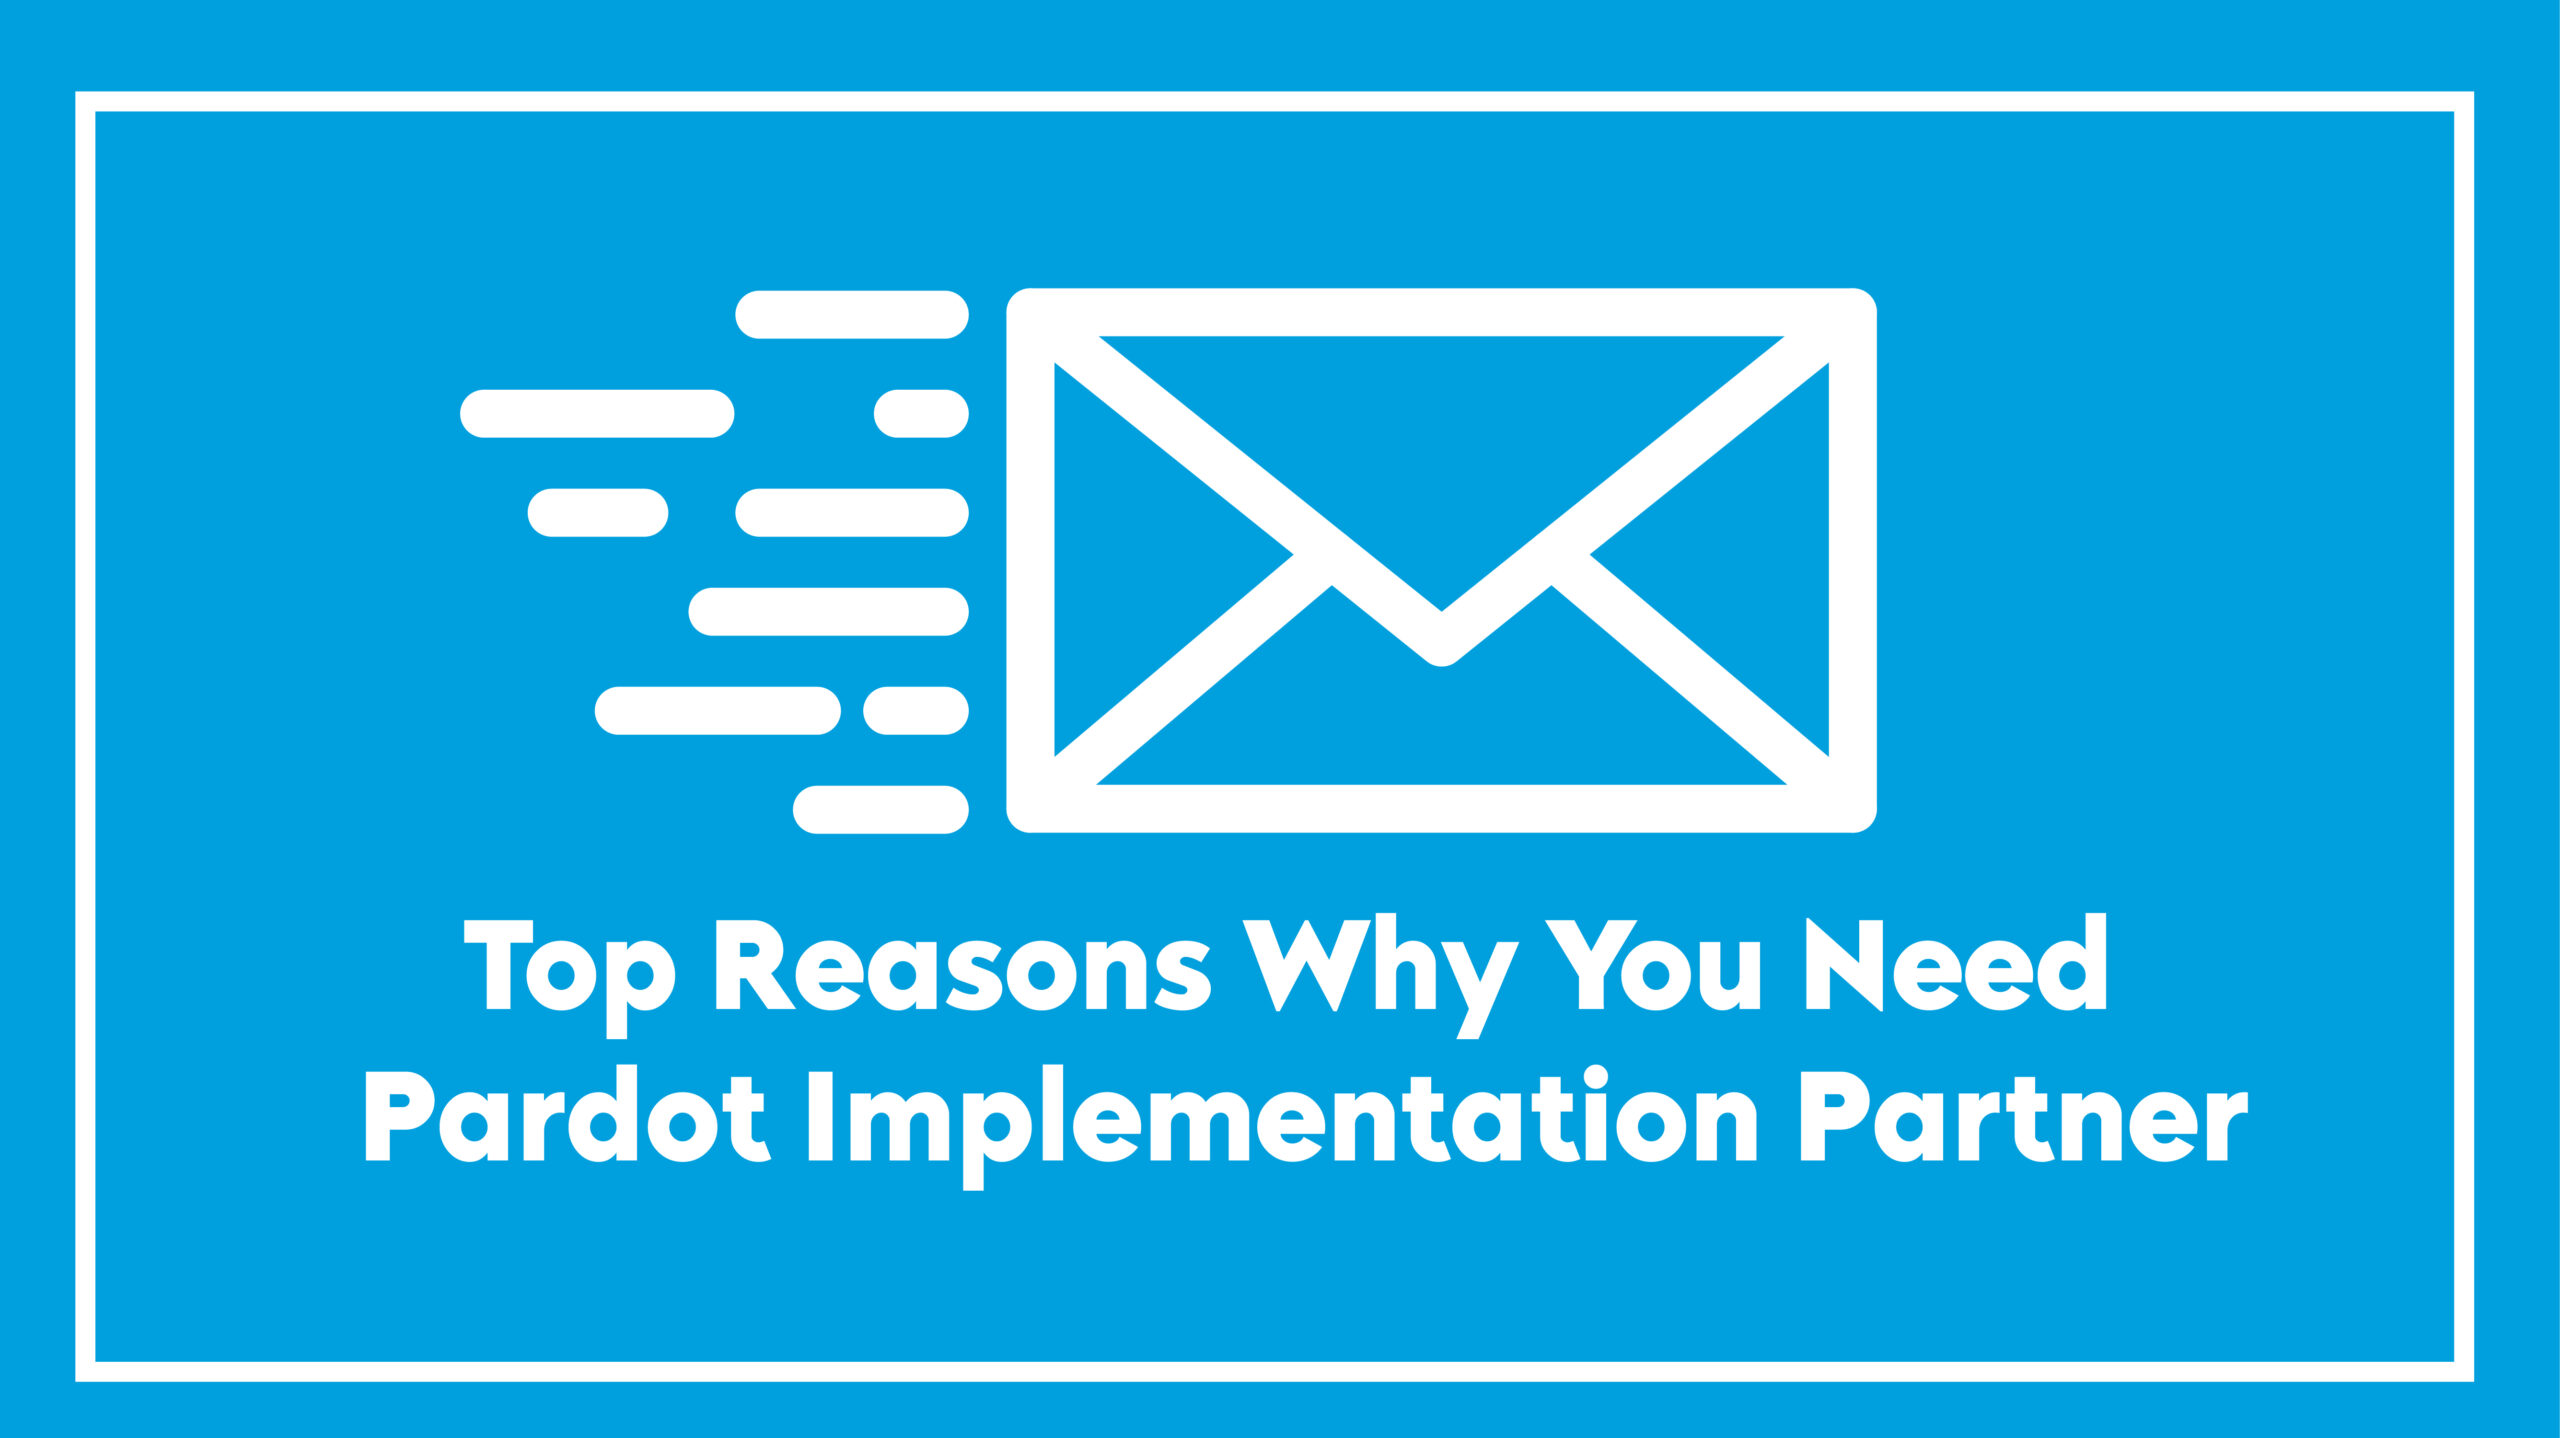 Top Reasons Why You Need Pardot Implementation Partner - divssfdc.com